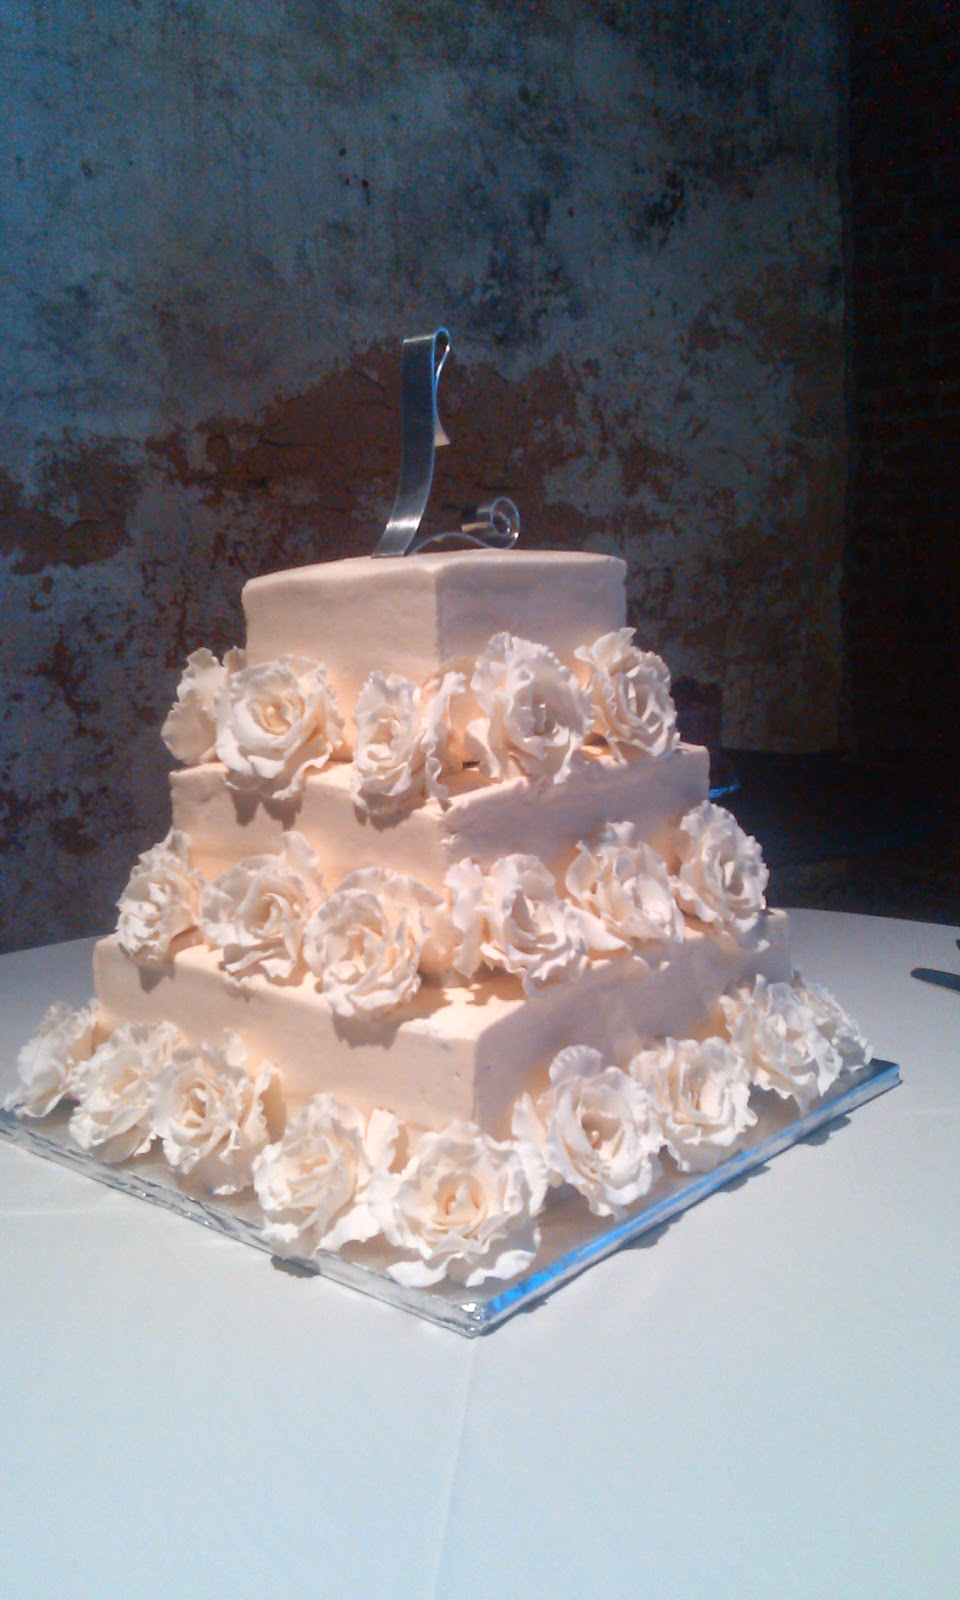 Cake Art Lawrenceville Hwy : CAFE AROMAS: Square Wedding Cake with Gum paste Roses